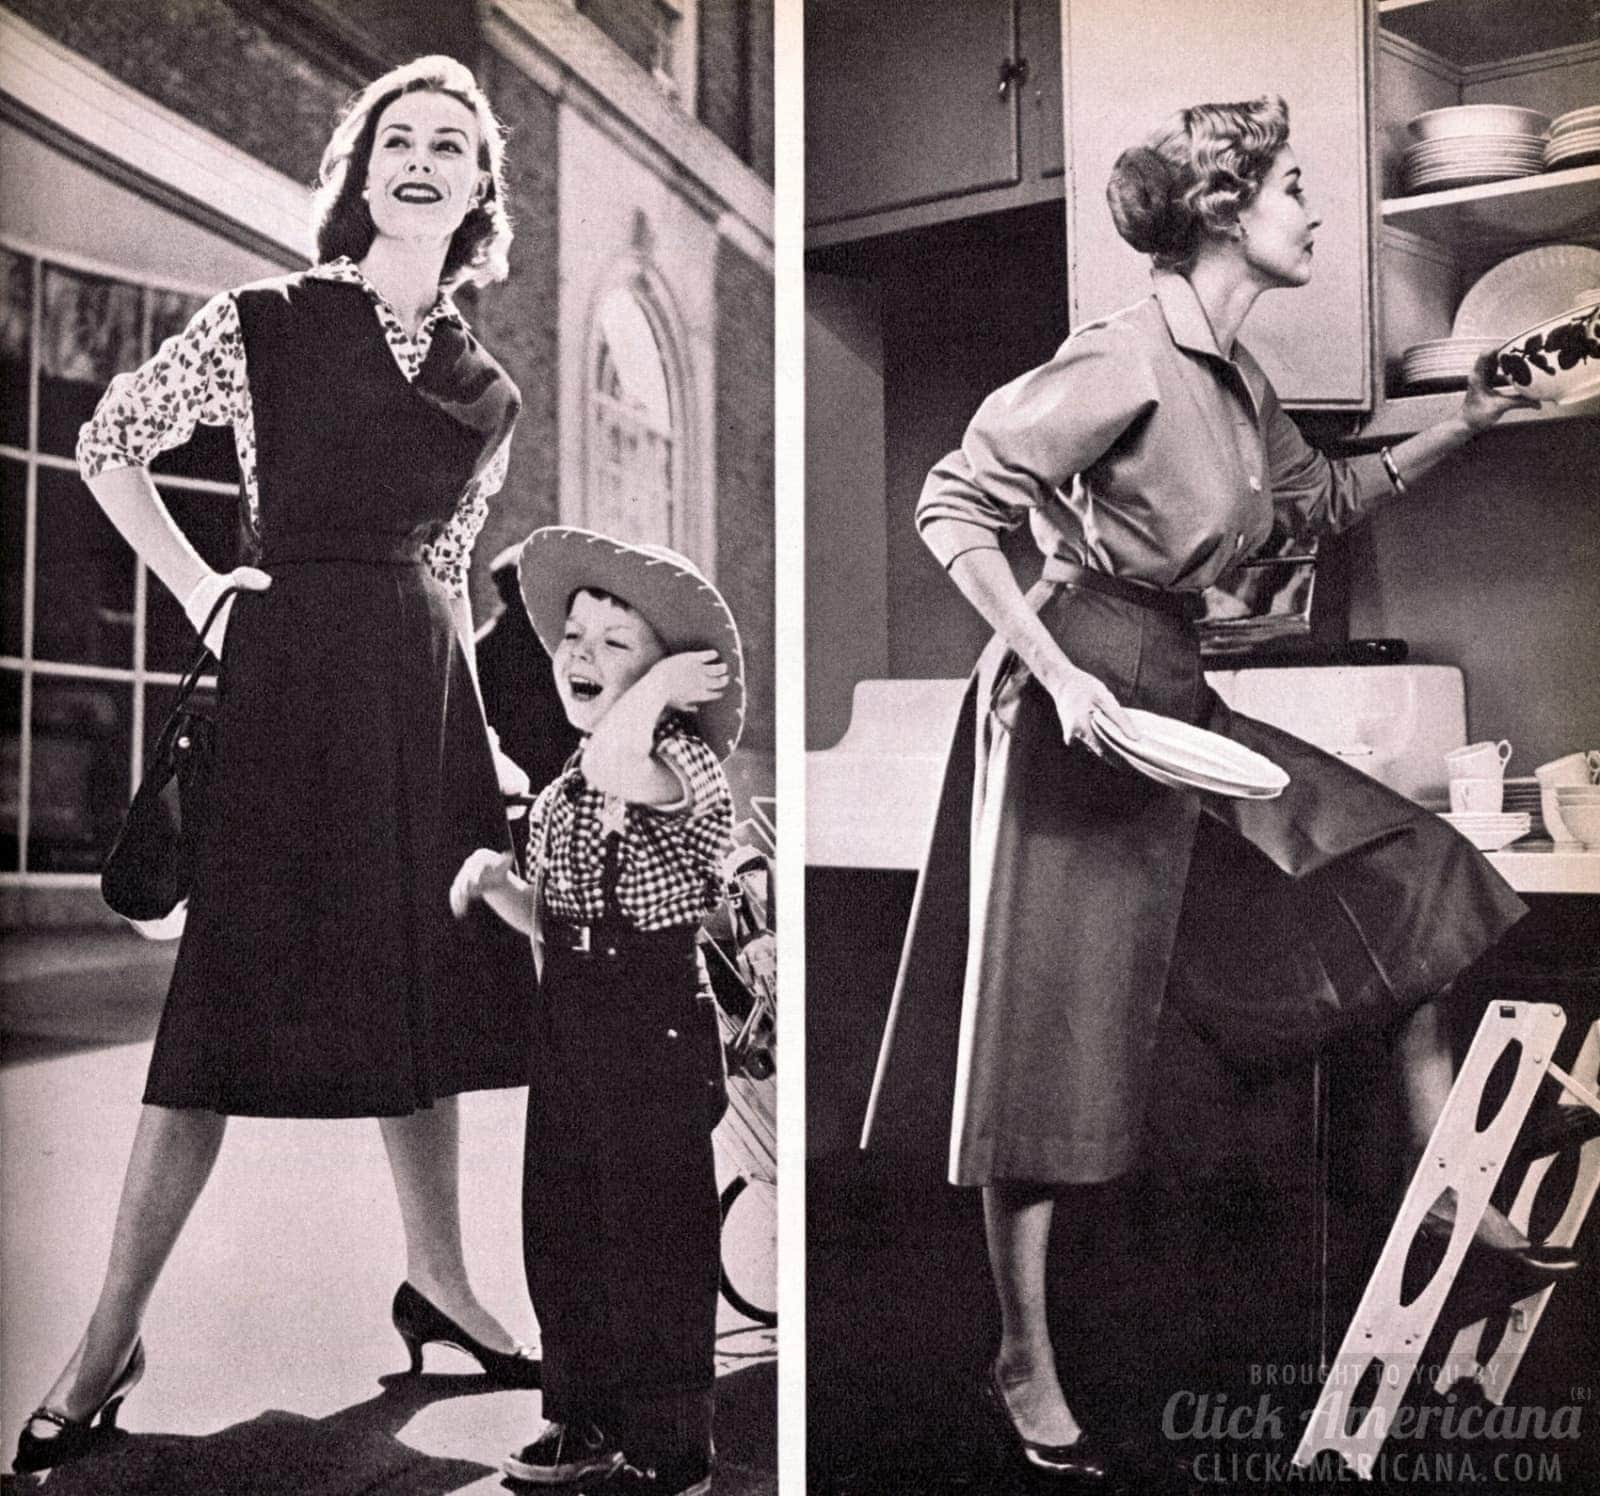 From campus to kitchen, culottes are the new '50s fashion